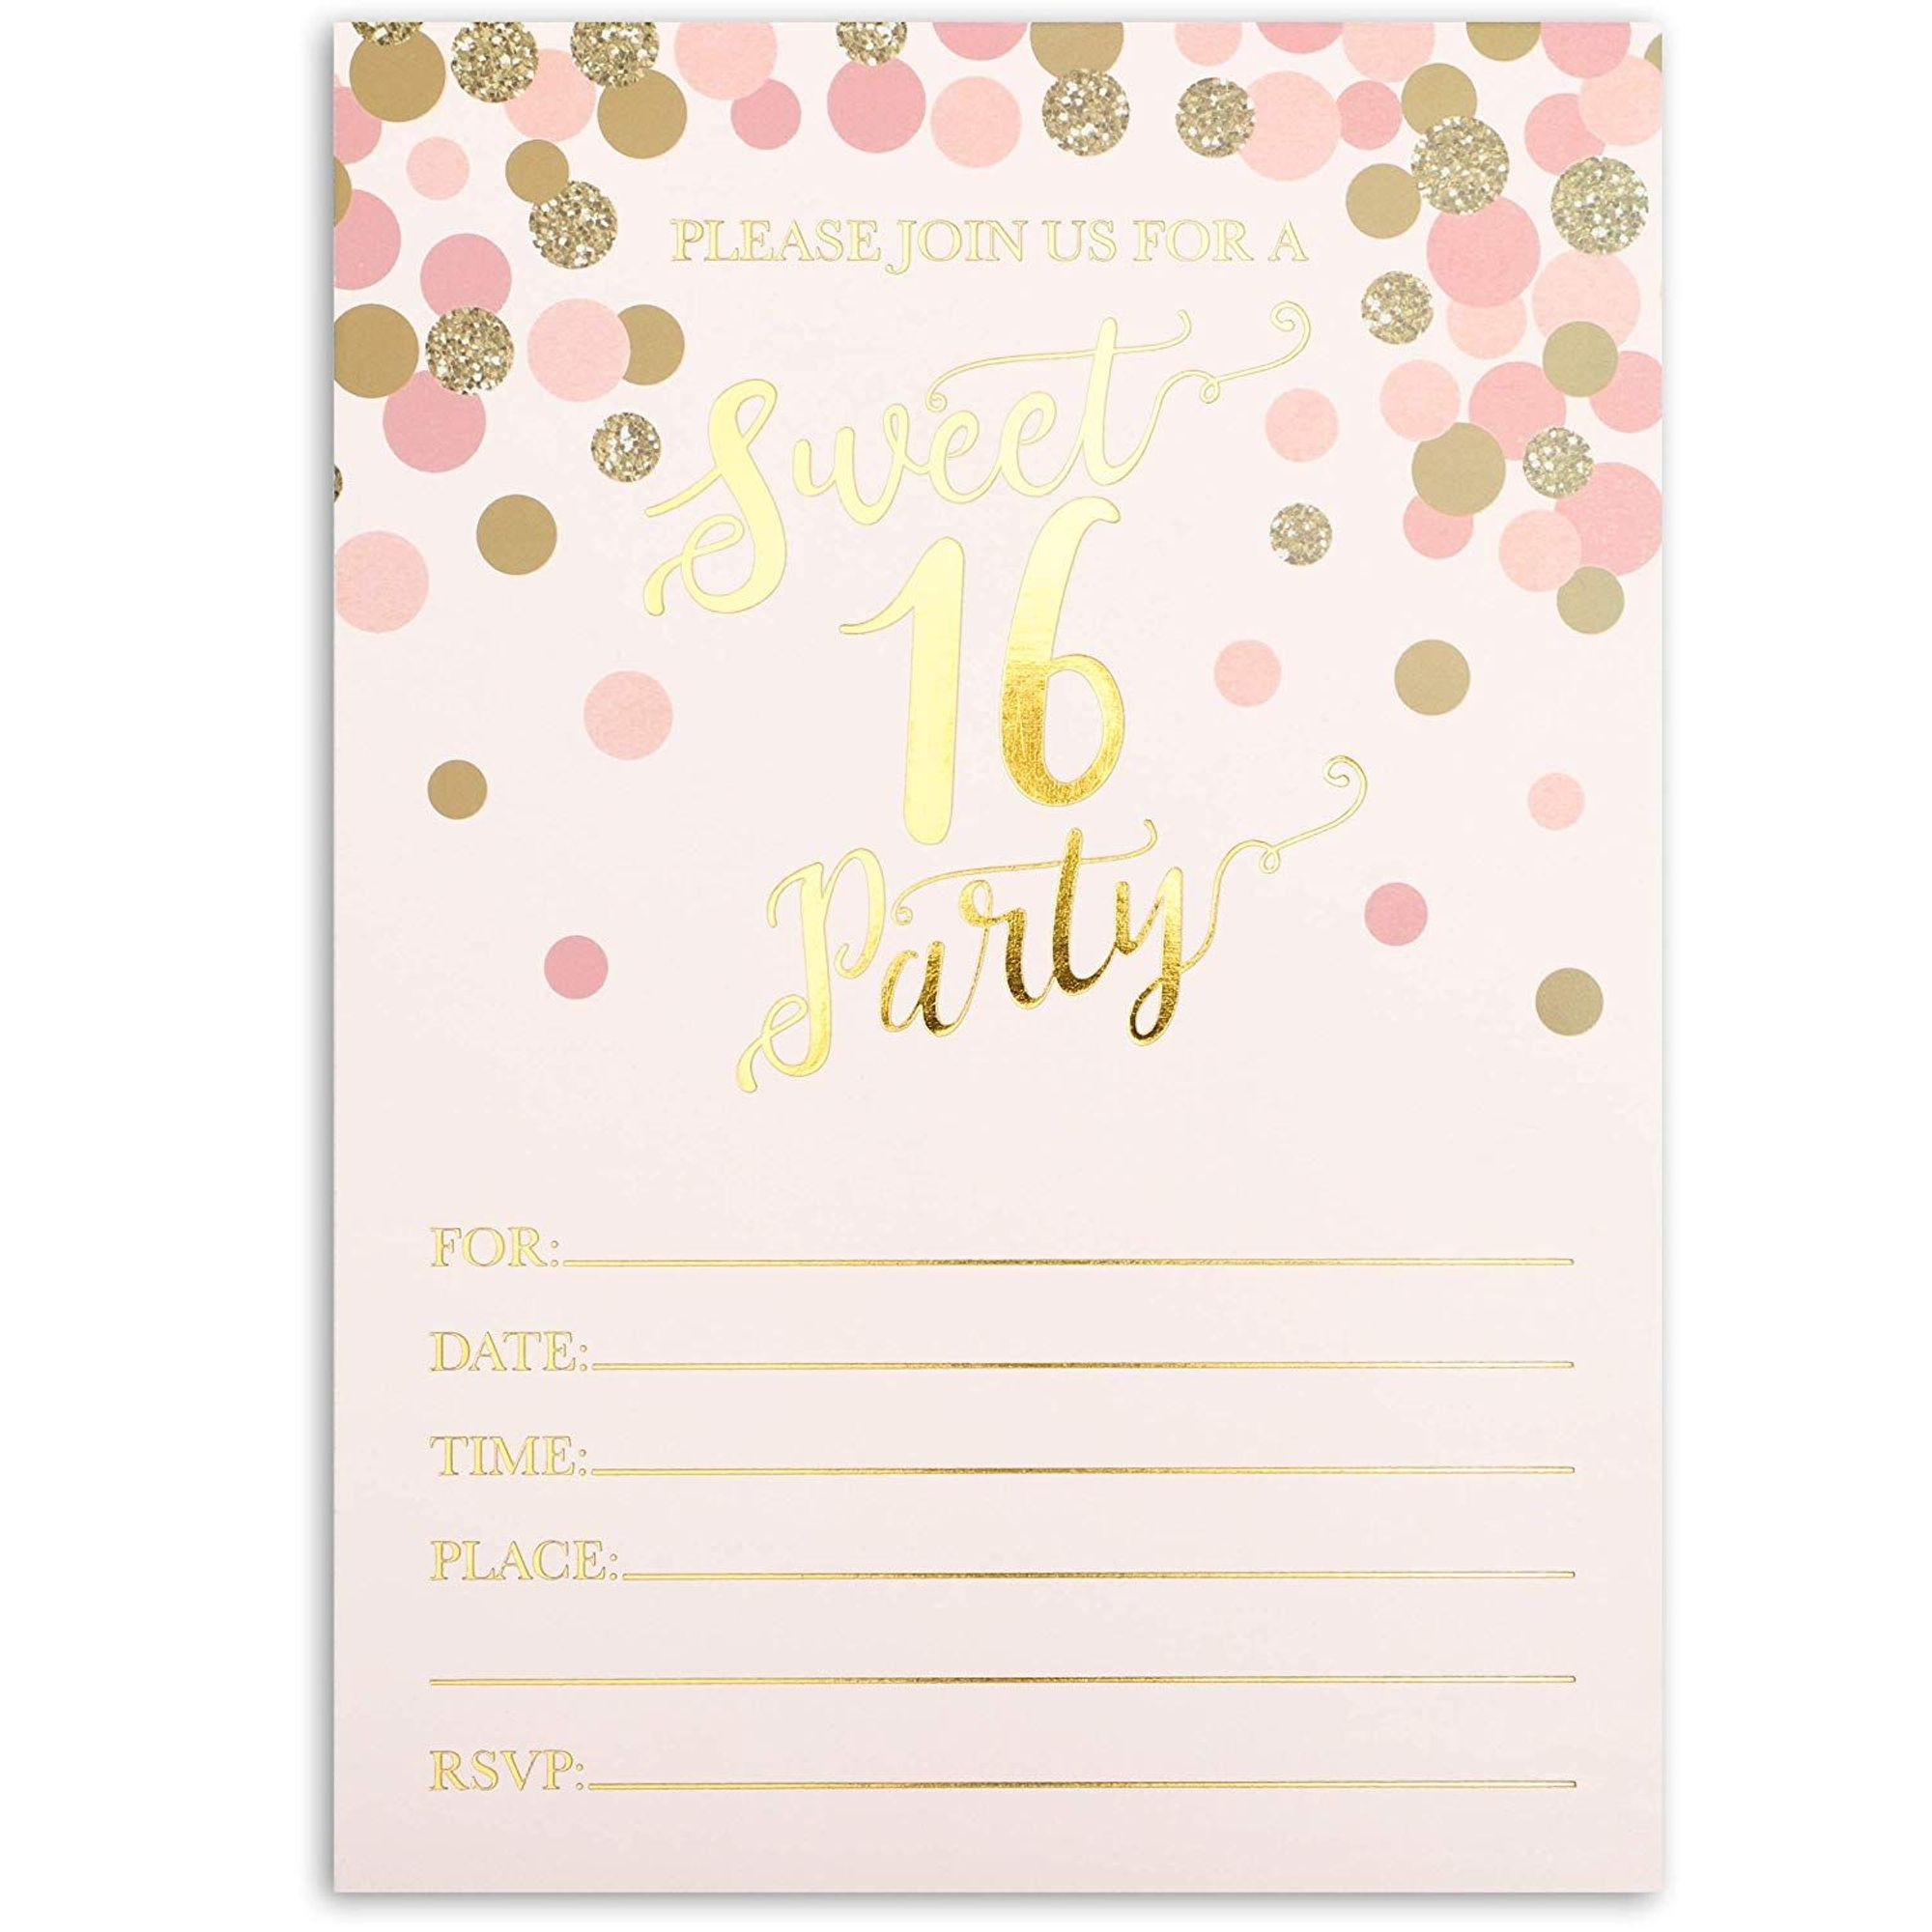 36 pack sweet 16 birthday party invitation with envelopes 5 x 7 inches pink with gold foil polka dots invitation cards for rsvp 16th birthday